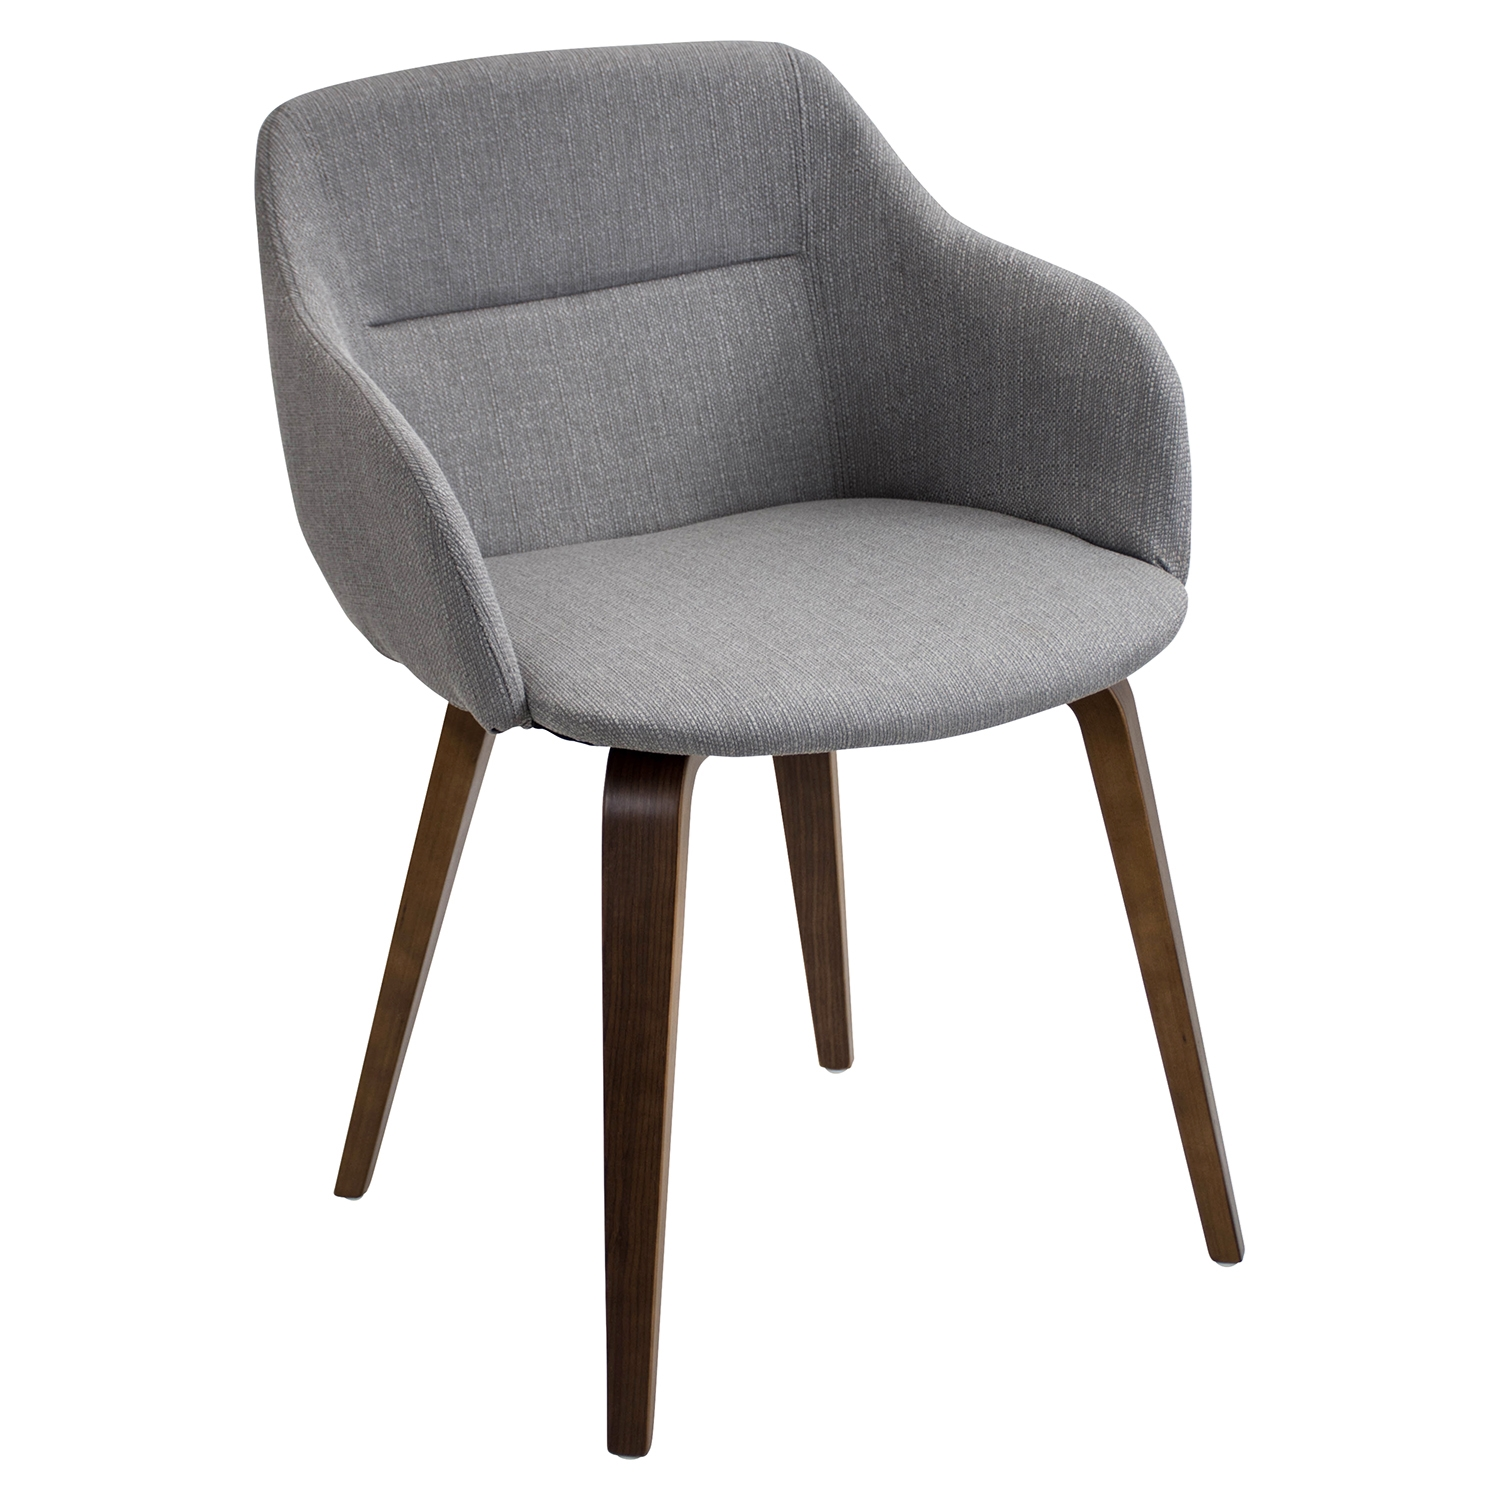 Campania Dining Chair - Gray - LMS-CH-CMP-WL-GY